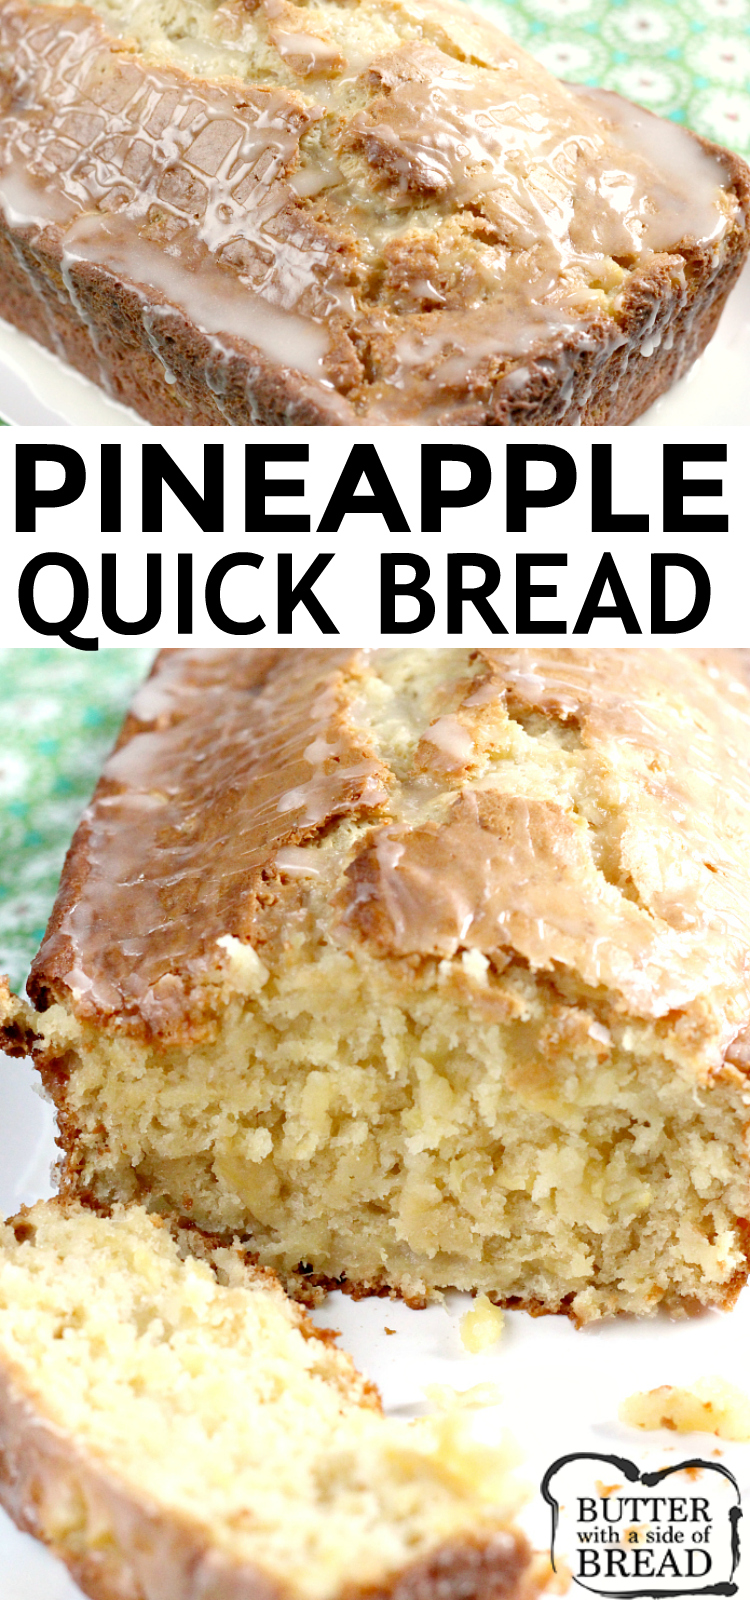 Pineapple Quick Bread is sweet, moist and absolutely delicious, especially with a simple pineapple glaze on top! This quick bread recipe is made with crushed pineapple, cream cheese, sour cream and a few other basic ingredients.